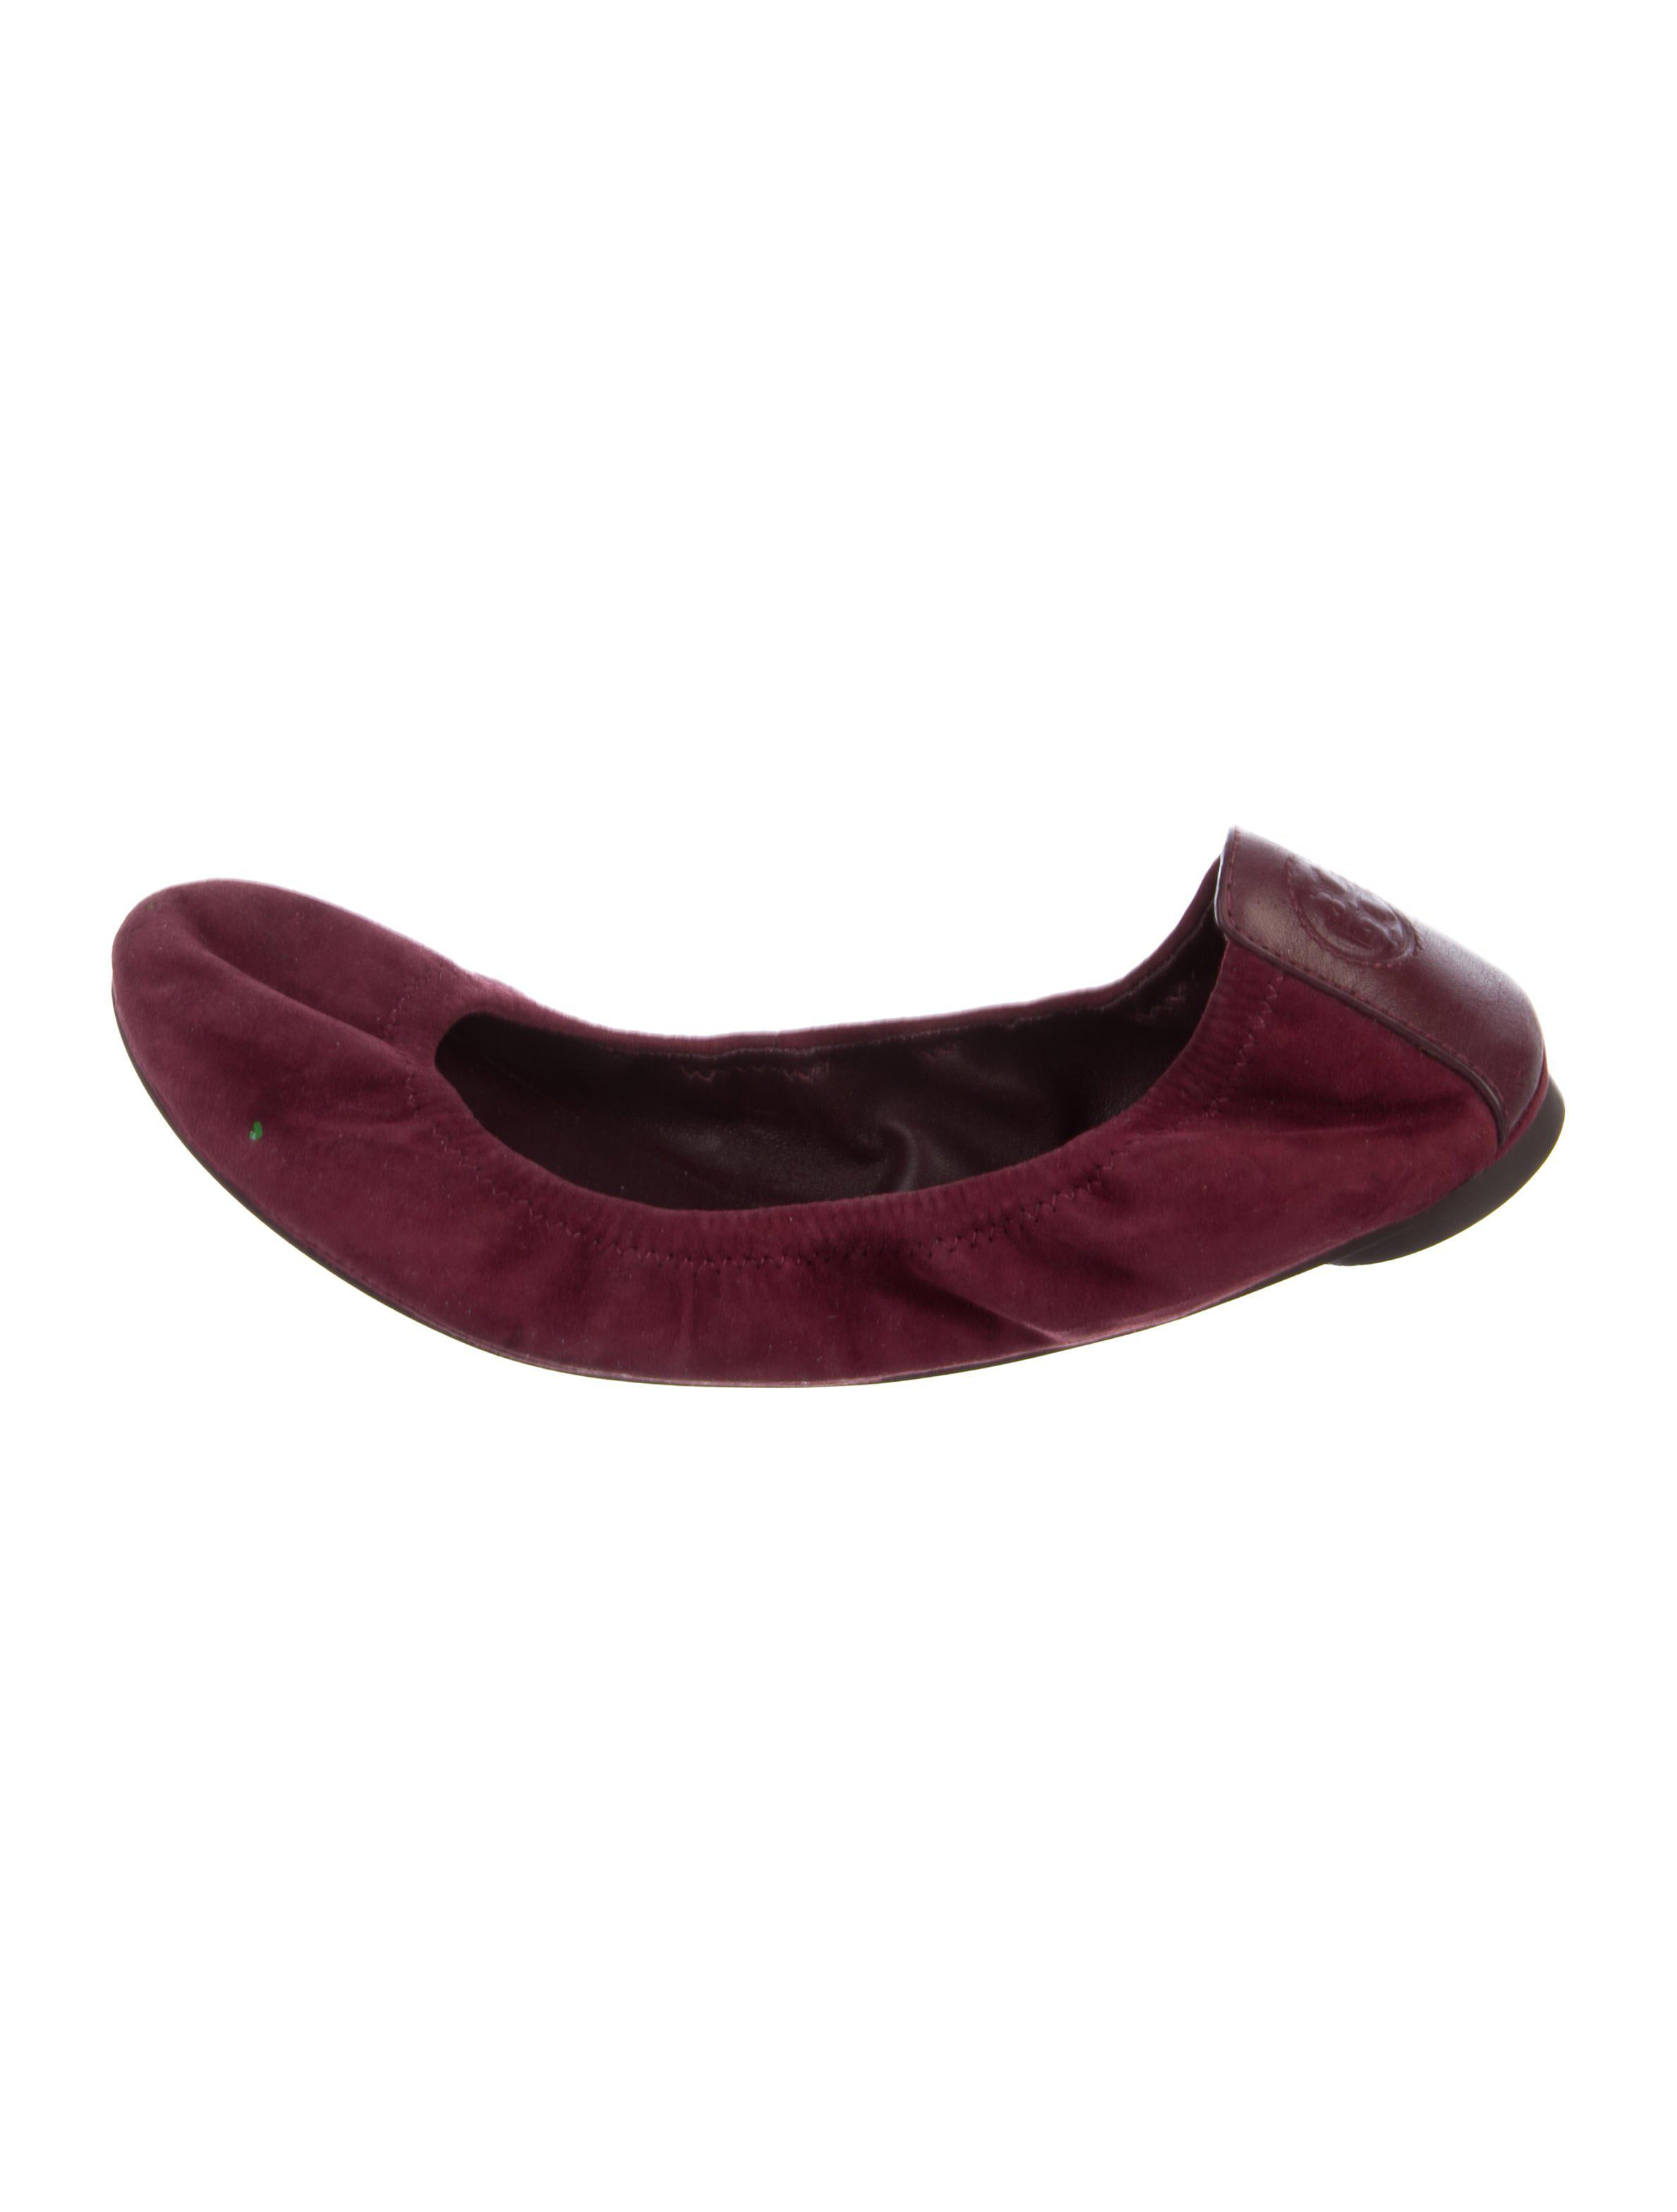 388215abe3f Lyst - Tory Burch Suede Round-toe Flats in Purple